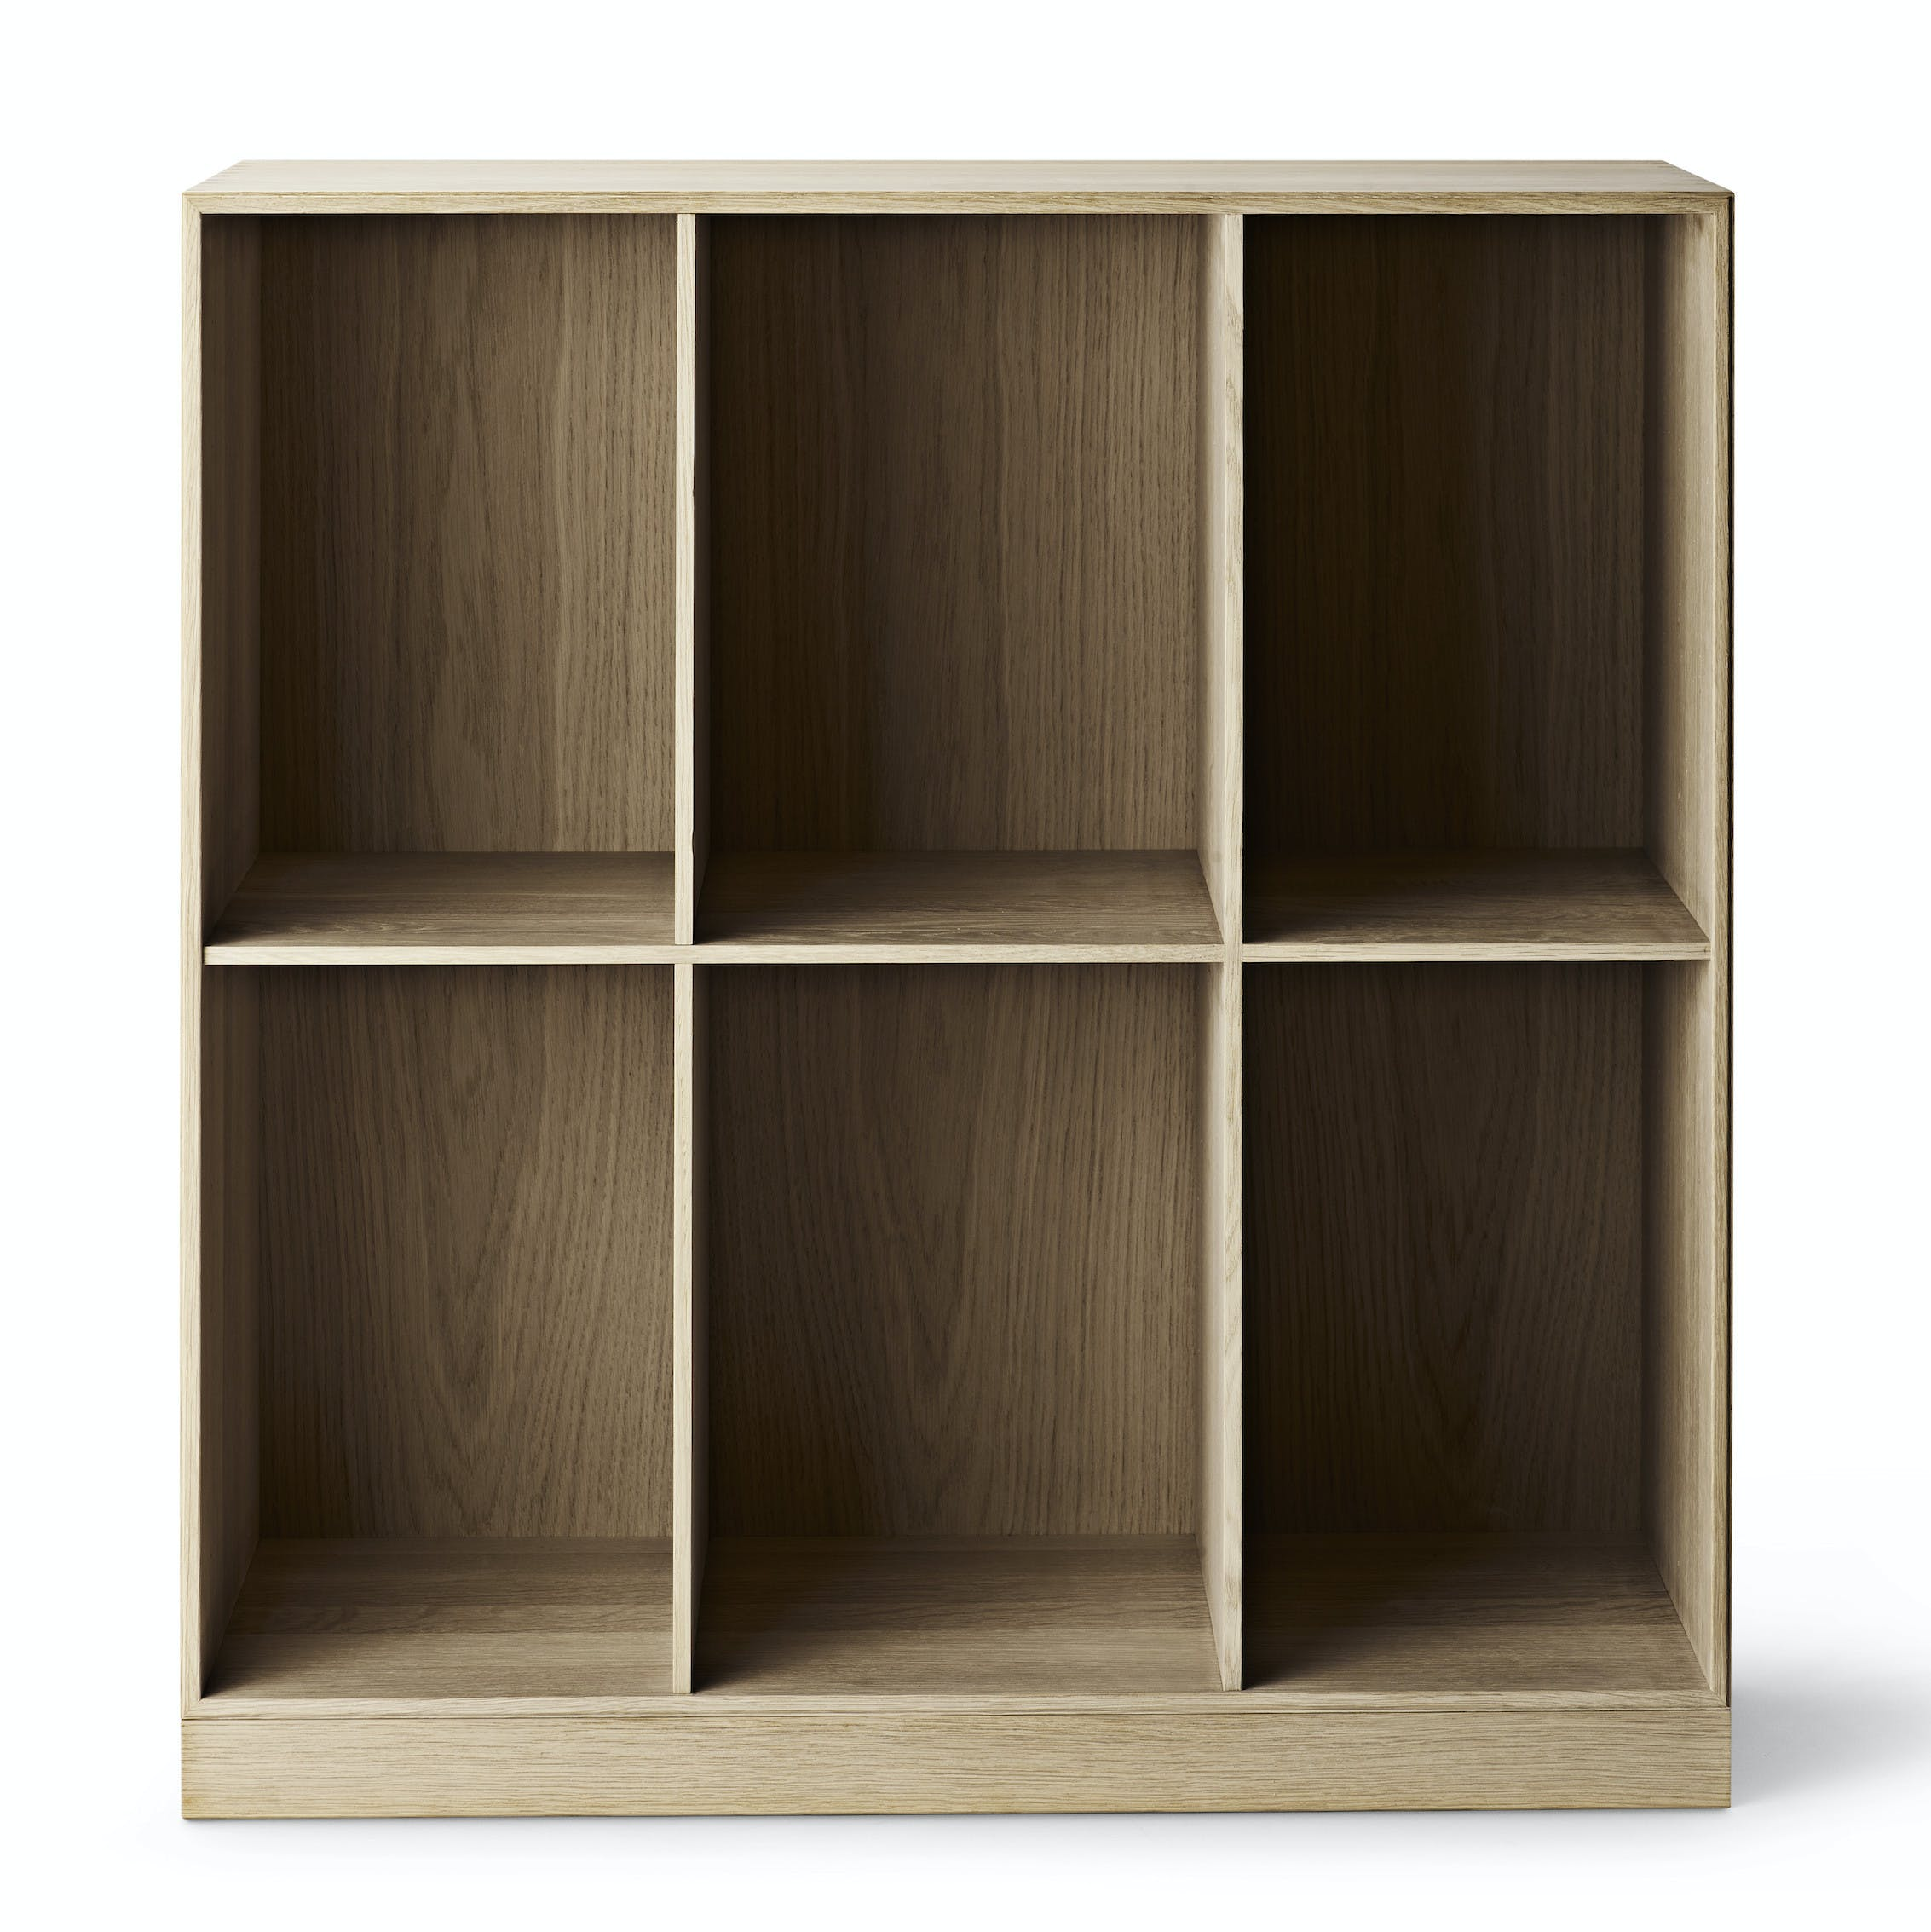 Mogens Koch Mk98400 Deep Bookcase Oak Soap